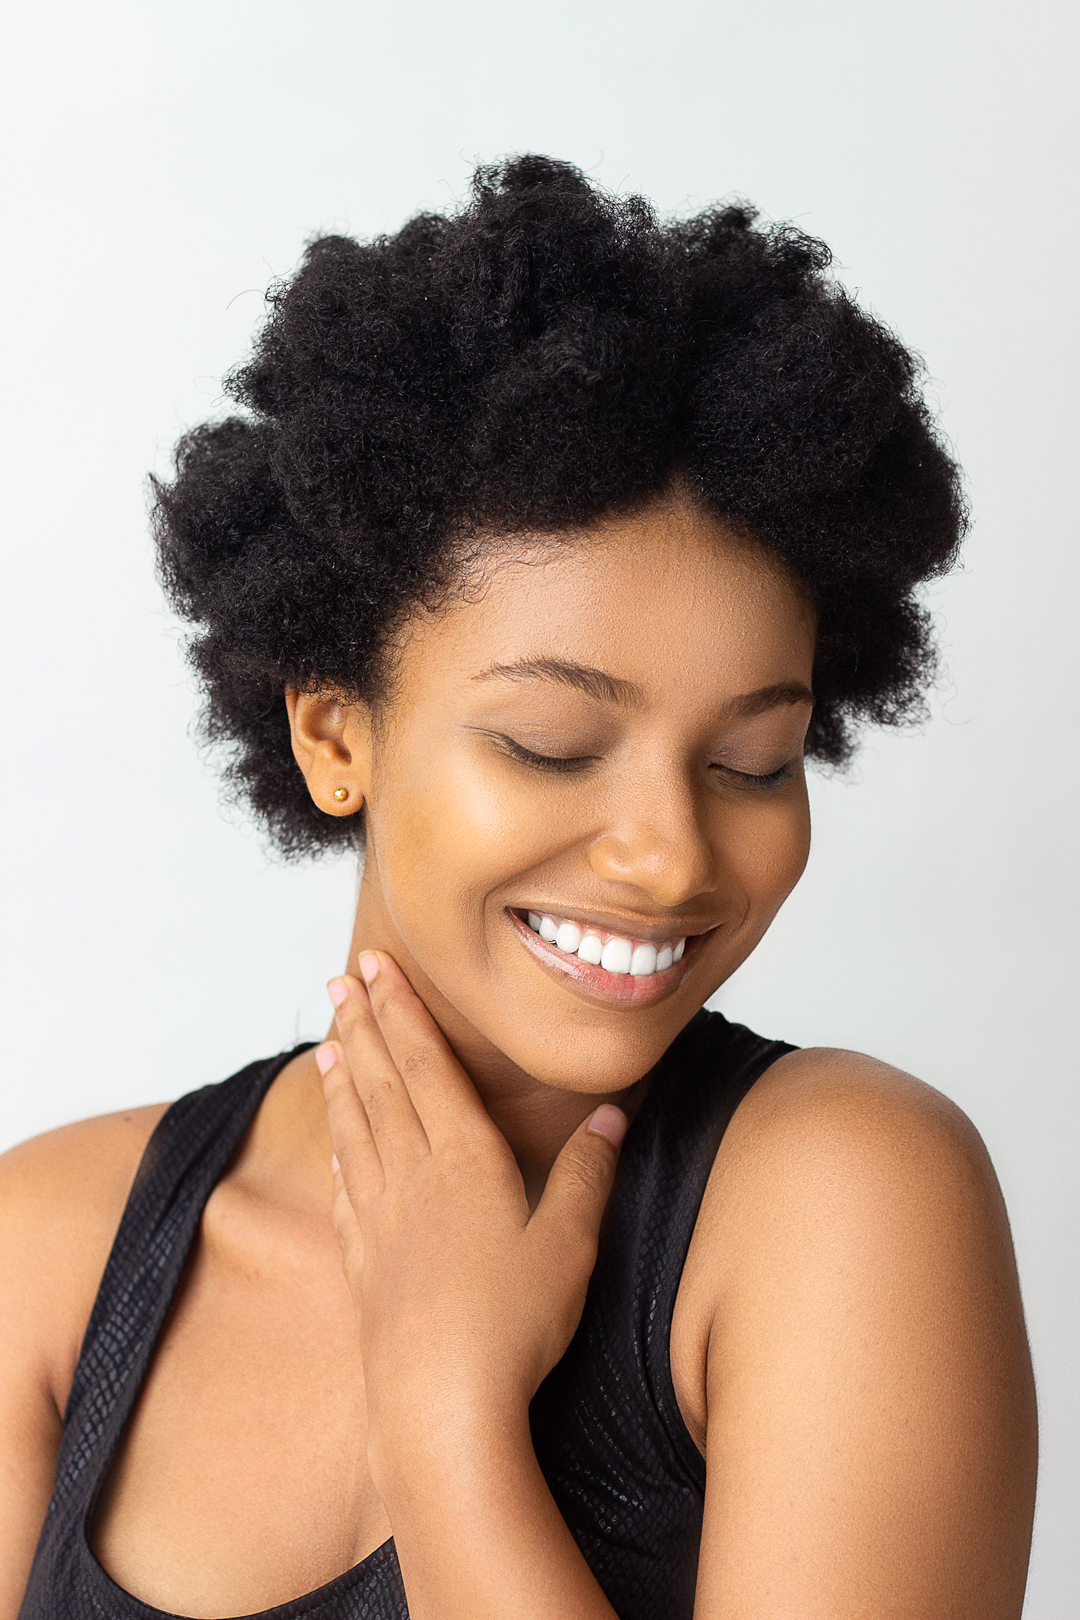 Achieving a Perfect Skin Finish